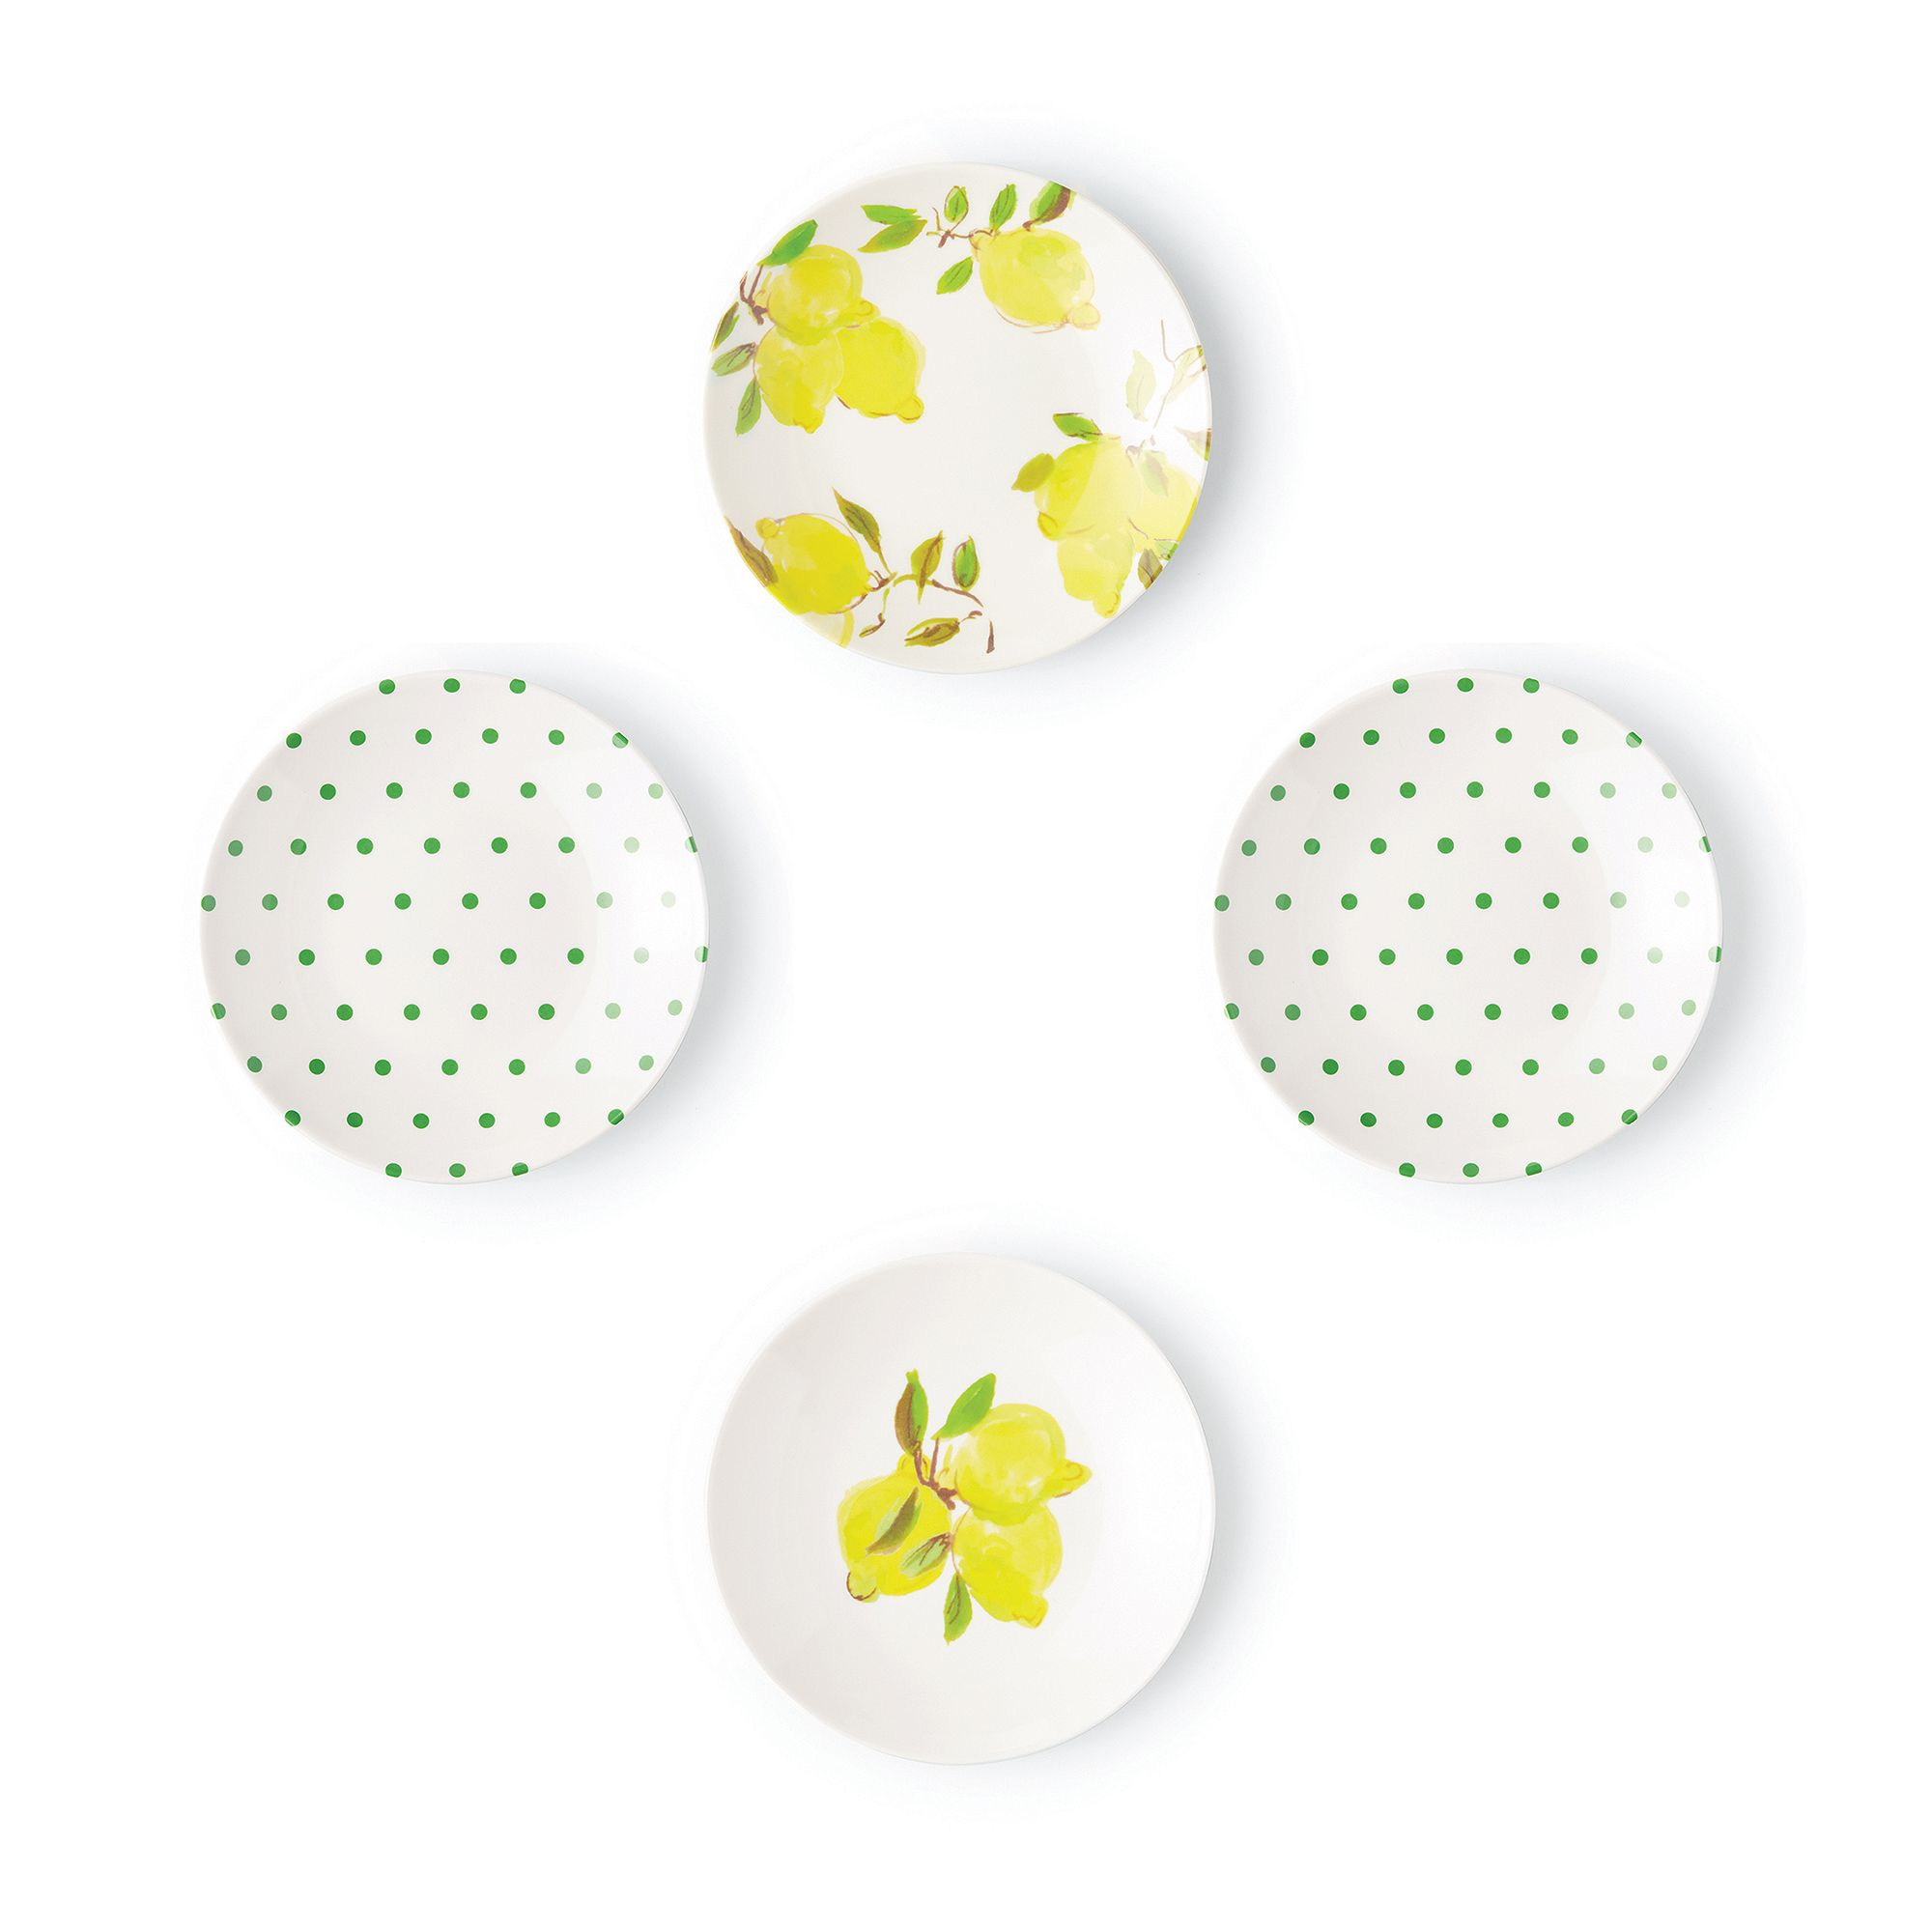 Kate Spade Lemon dishes